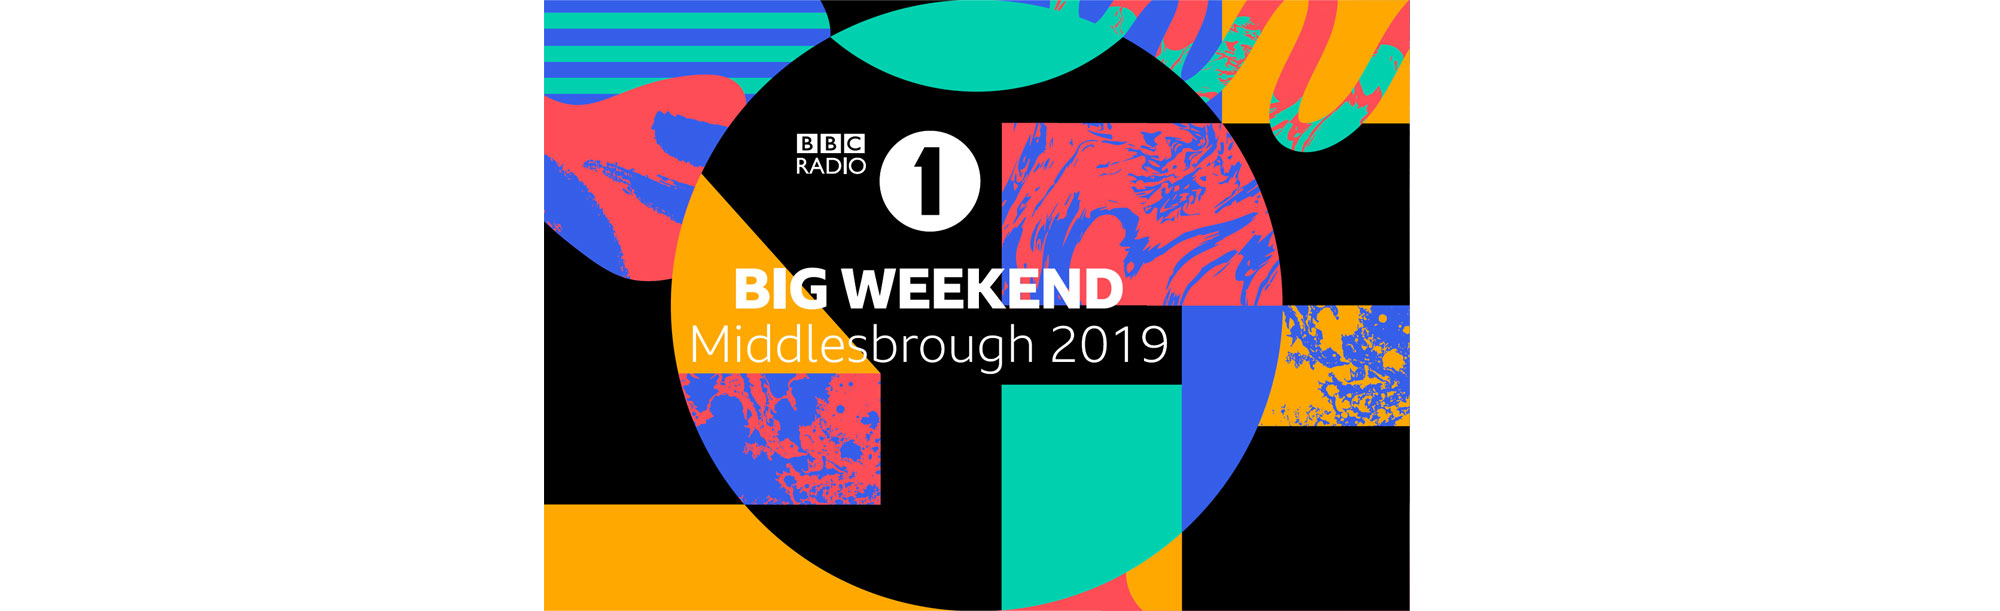 BBC Radio 1's Big Weekend is coming to Middlesbrough!